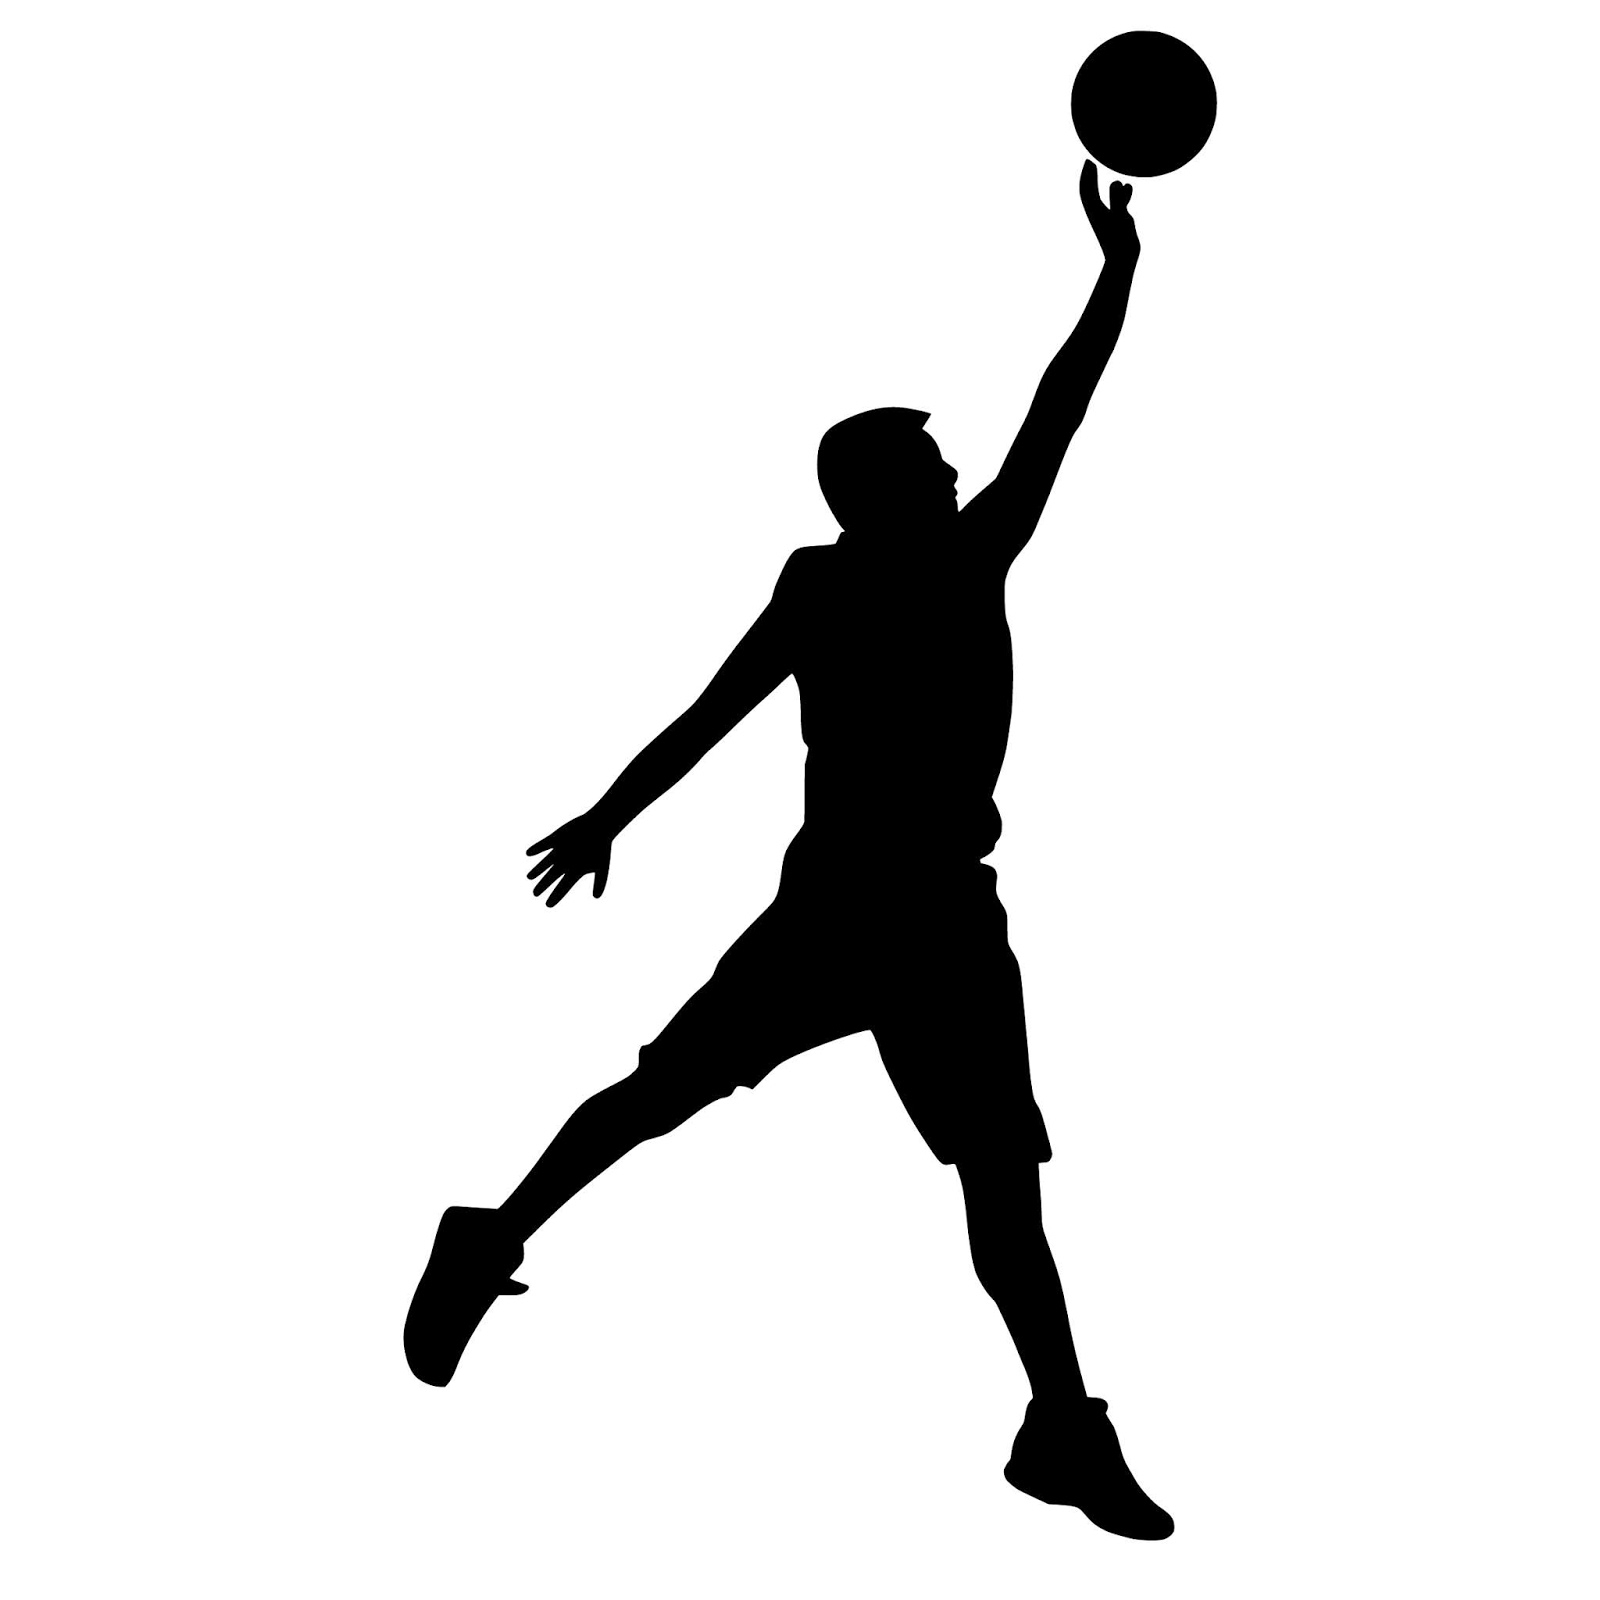 basketball, jumping, silhouette, athletic, ball, championship, competition, cover, dunk, game, hoop, jump, man, match, practice, strong, skill, slam, sport, tournament